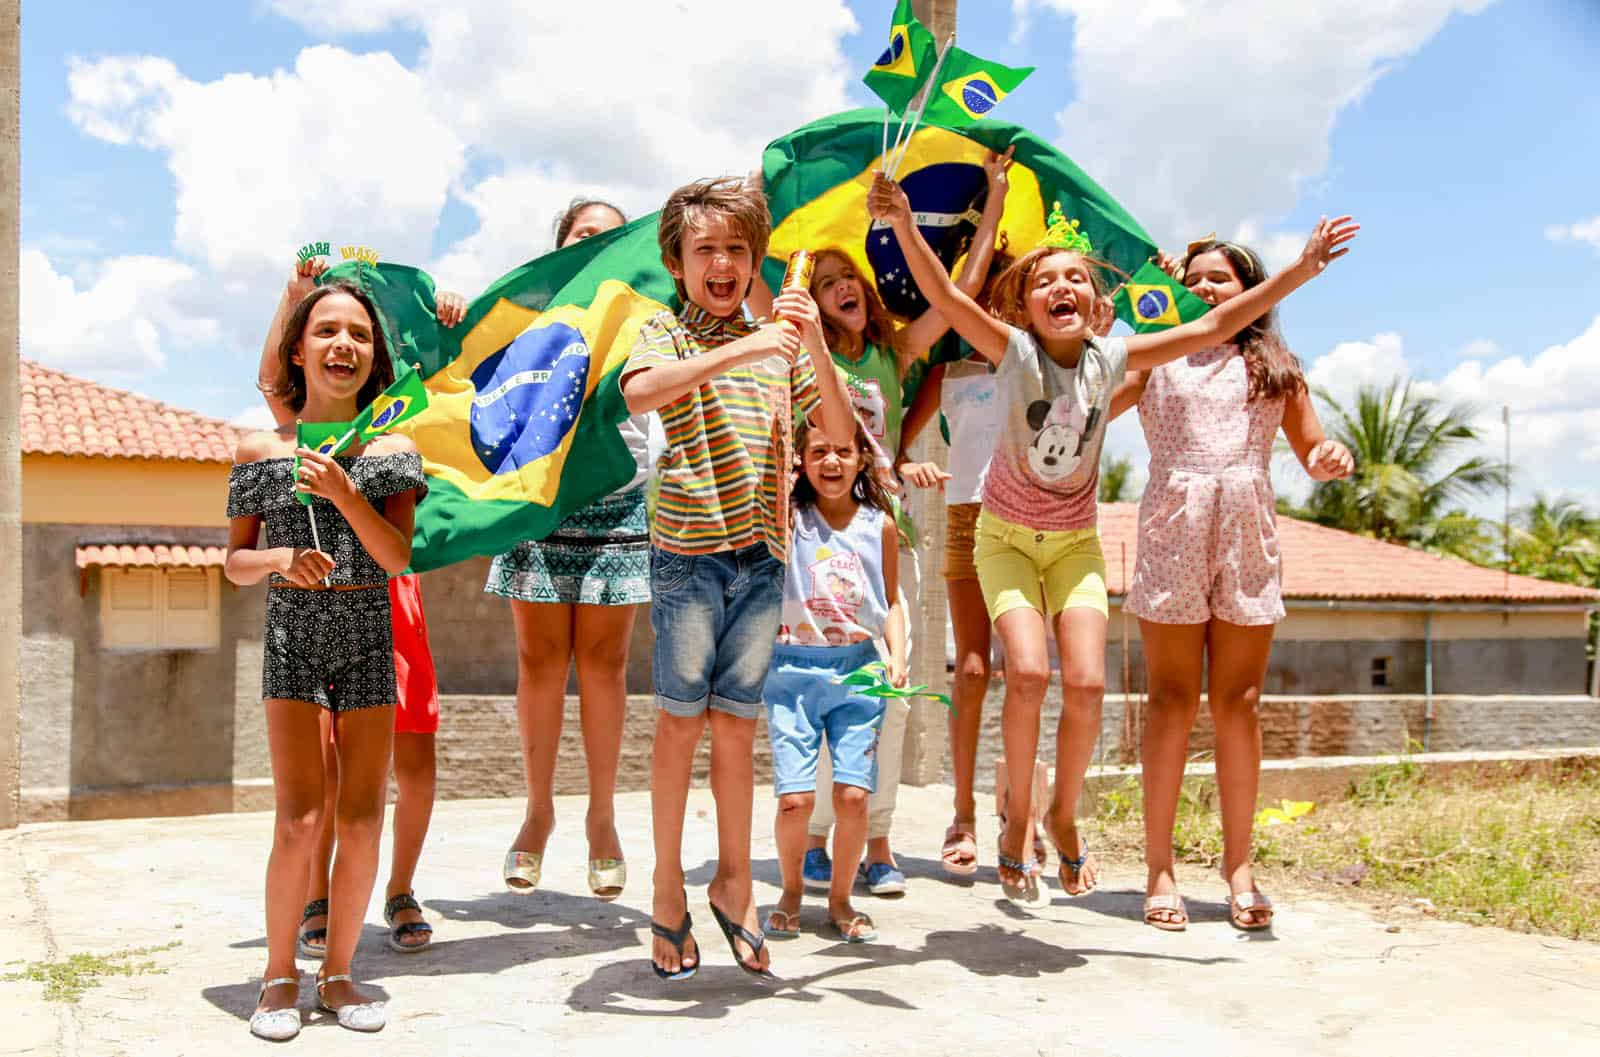 Facts About Brazil: A Spirited, Lively and Beautiful Nation